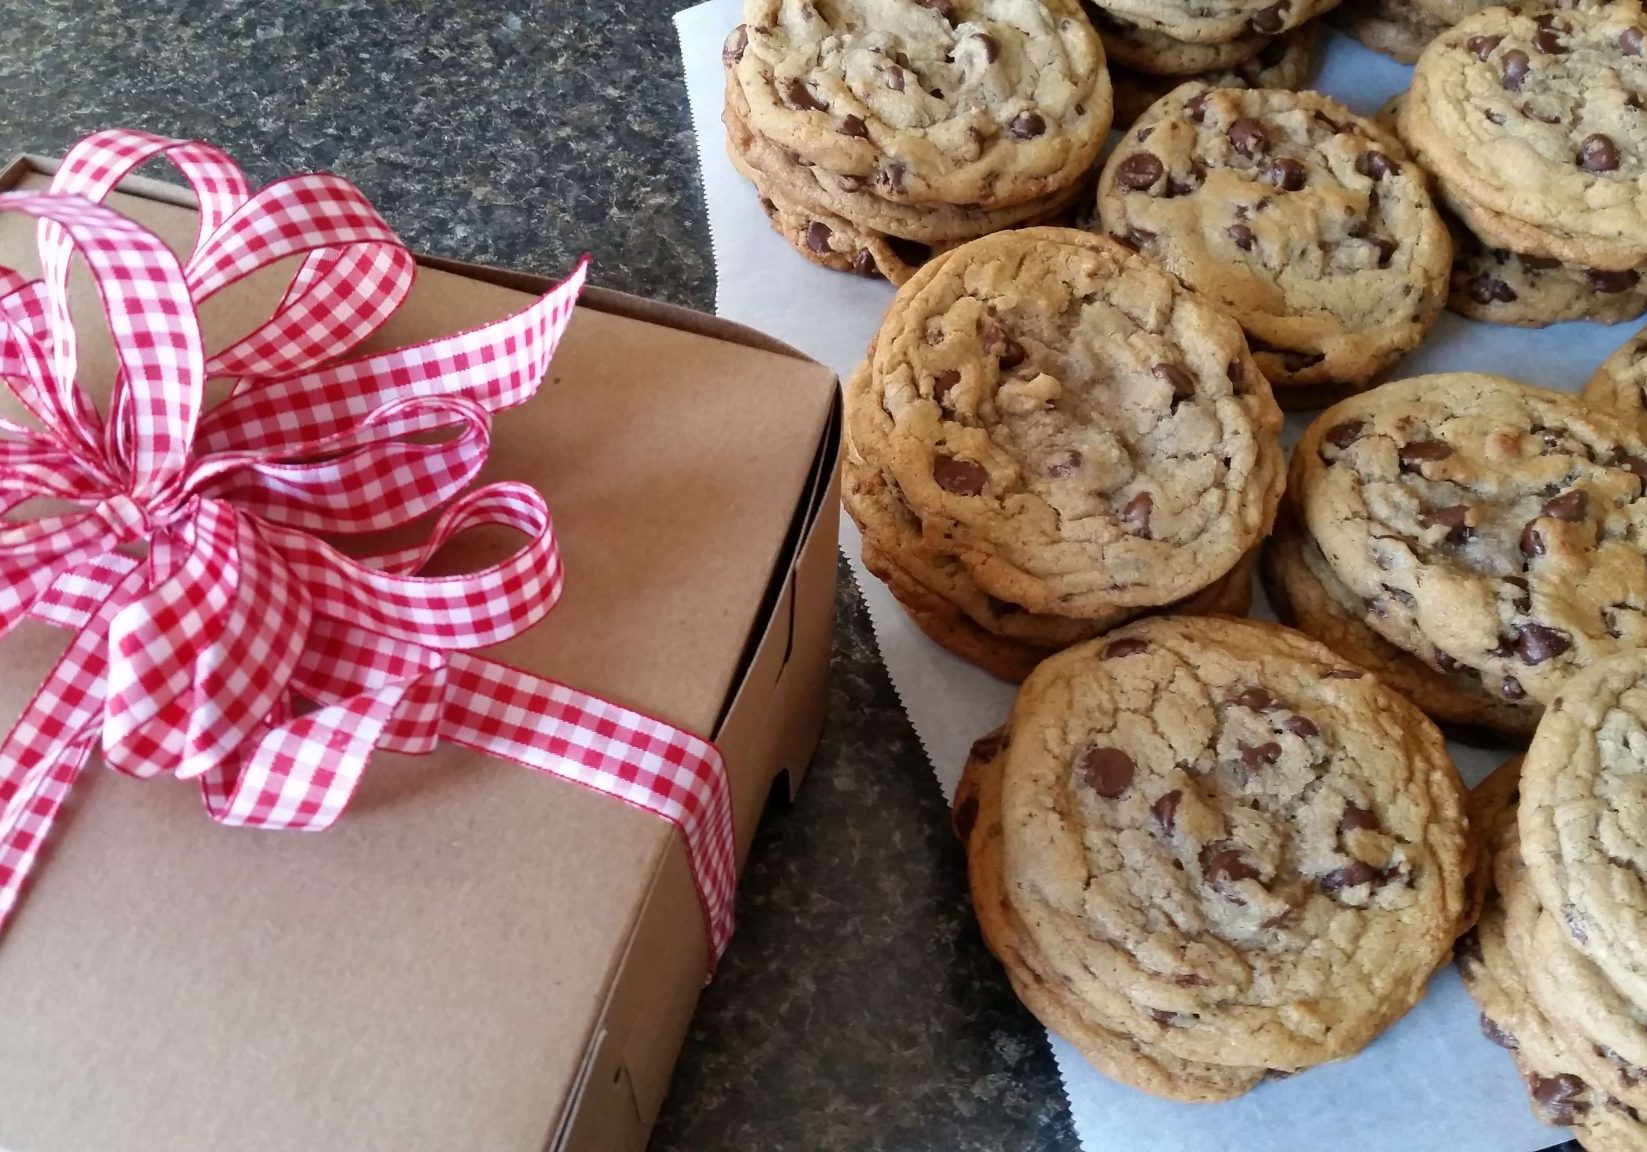 Picture of a gift box ready for Beth's Chocolate Chip cookies.